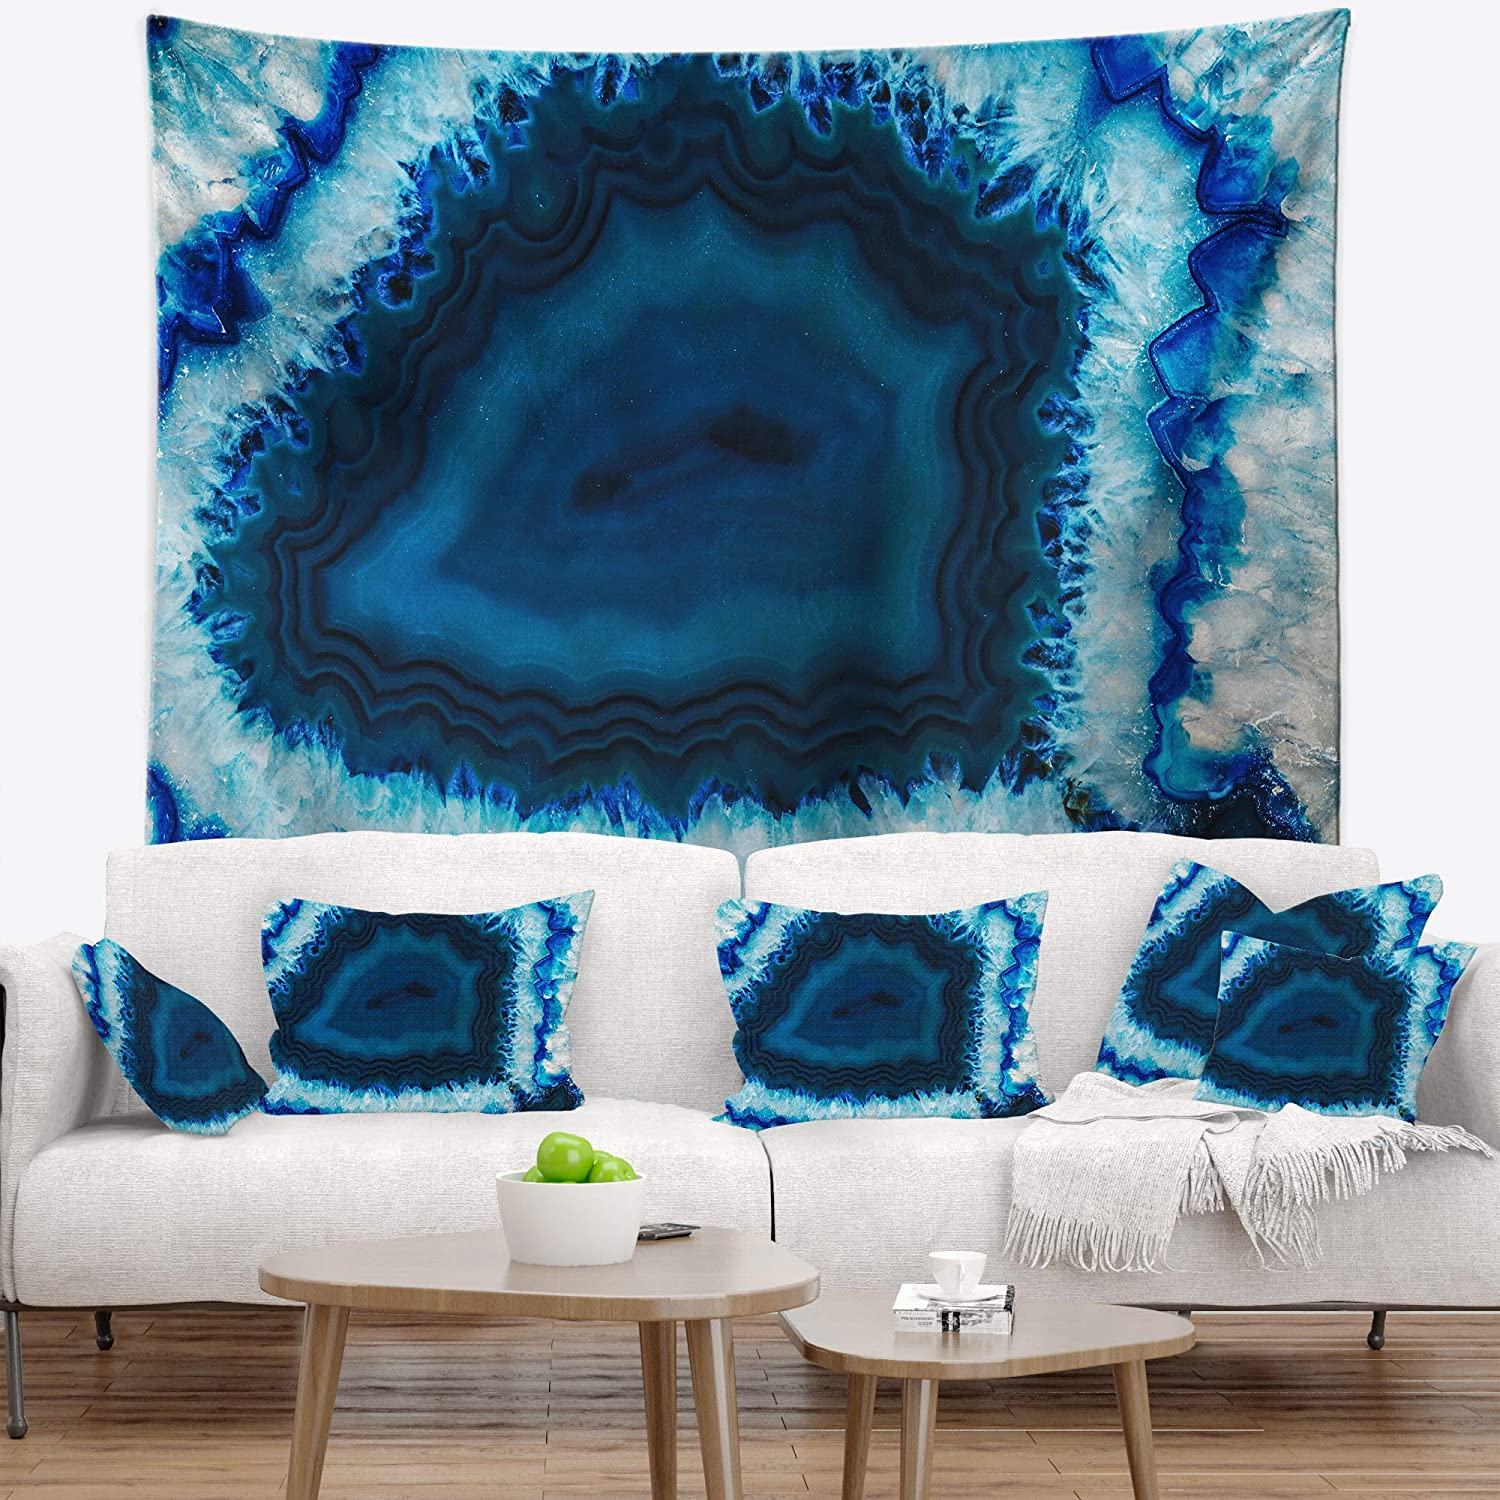 x 50 in 60 in Created On Lightweight Polyester Fabric Designart TAP14376-60-50  Brazilian Thunder Egg Abstract Blanket D/écor Art for Home and Office Wall Tapestry Large